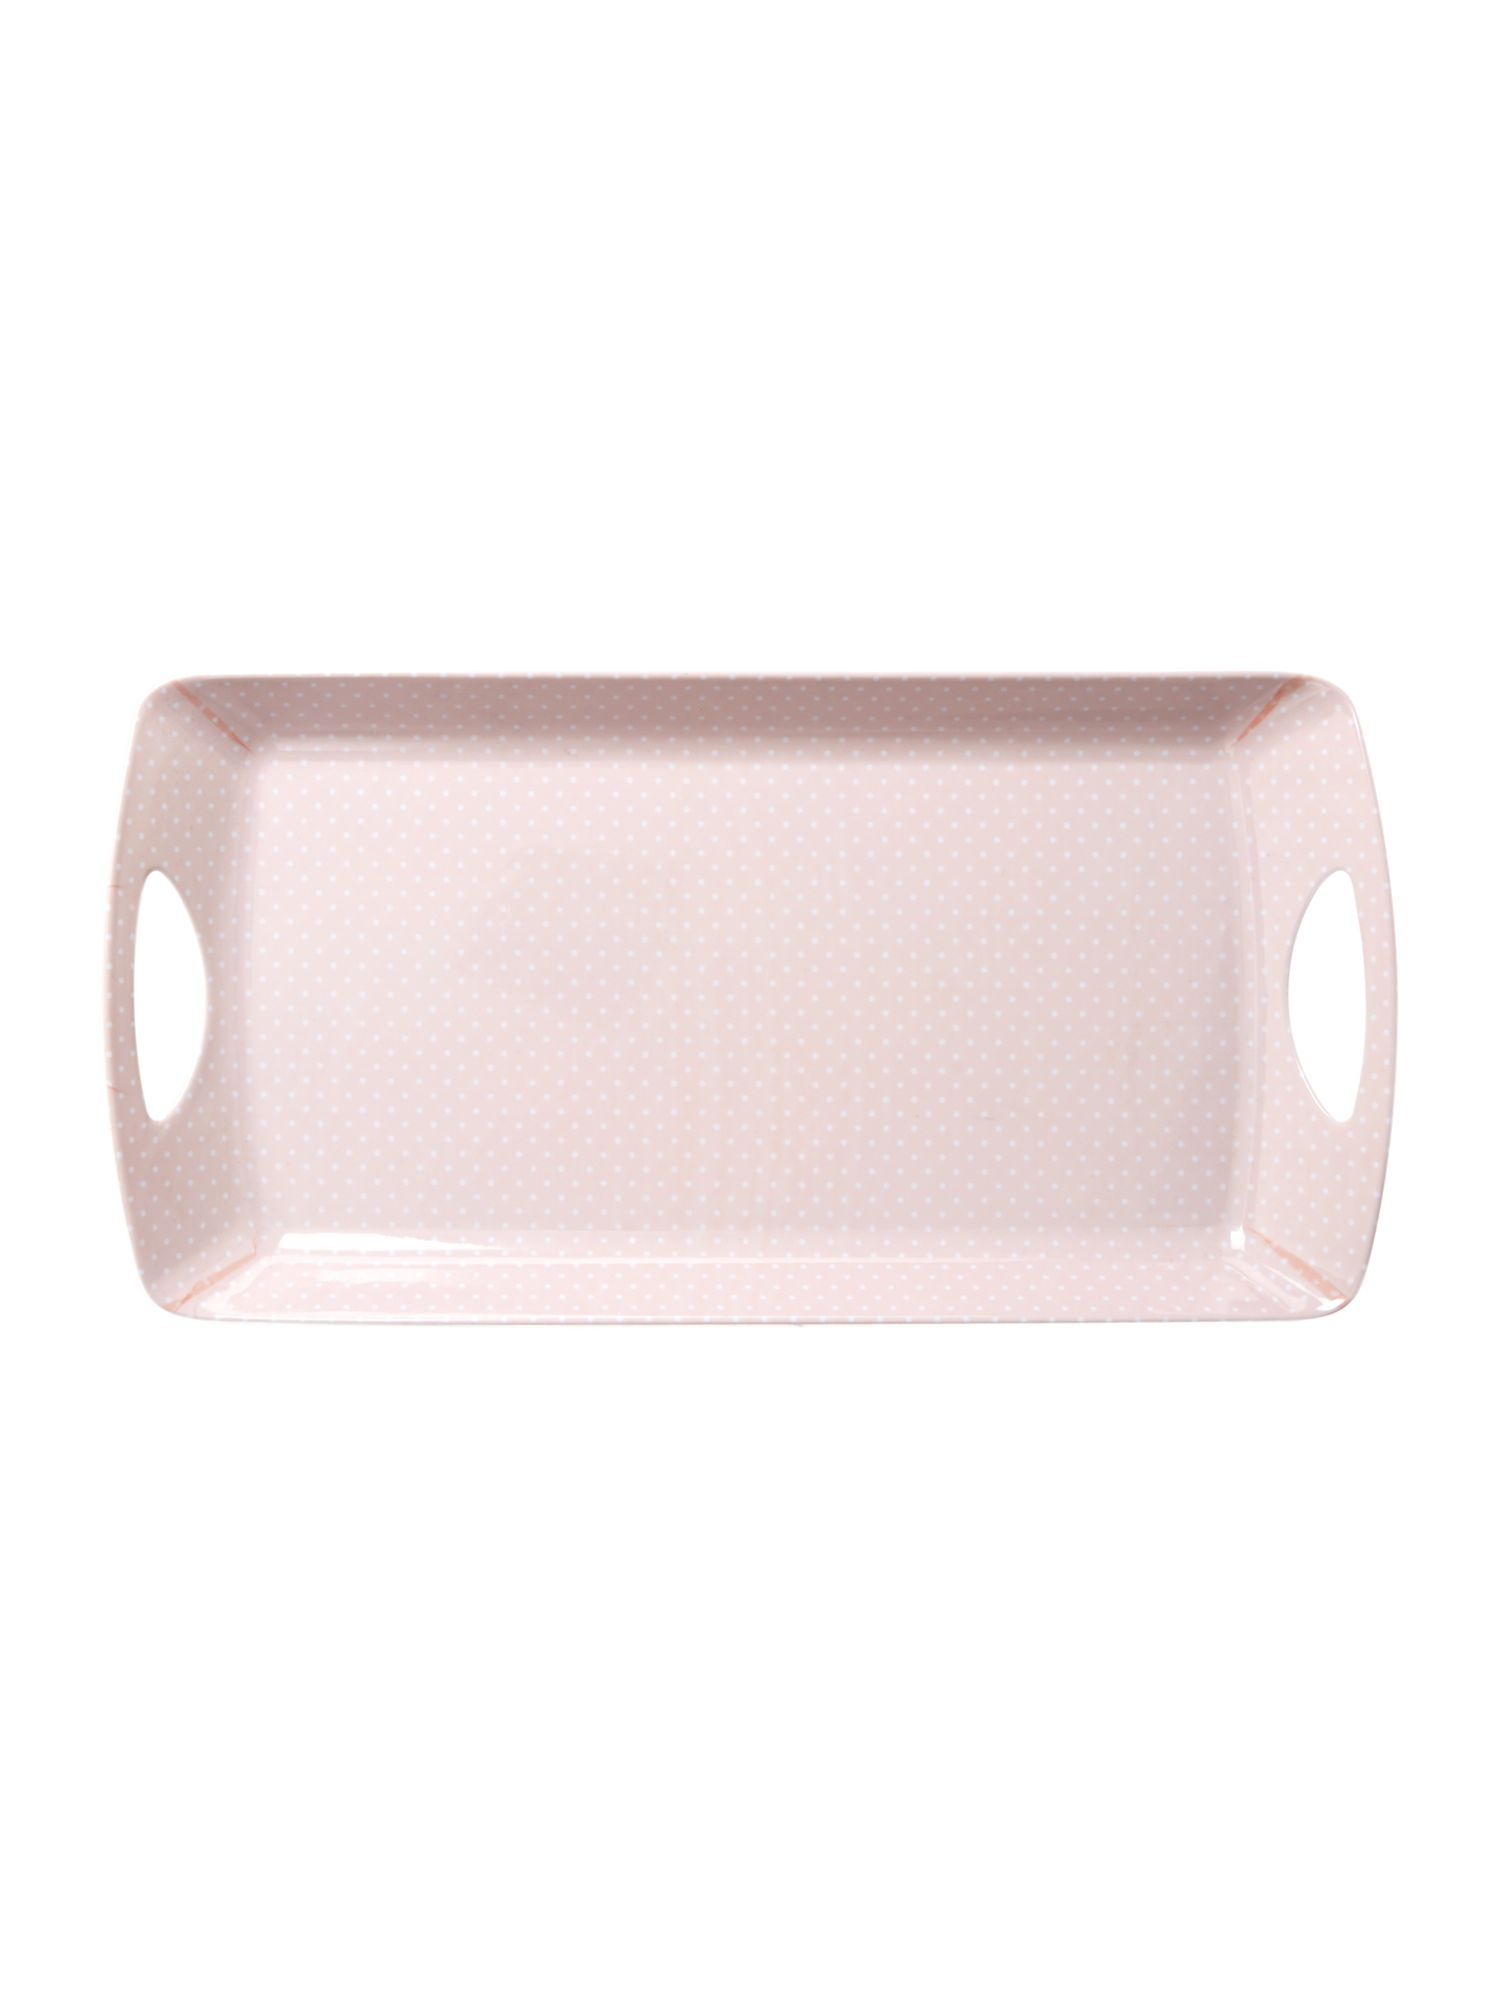 Vintage baking polka dot tray